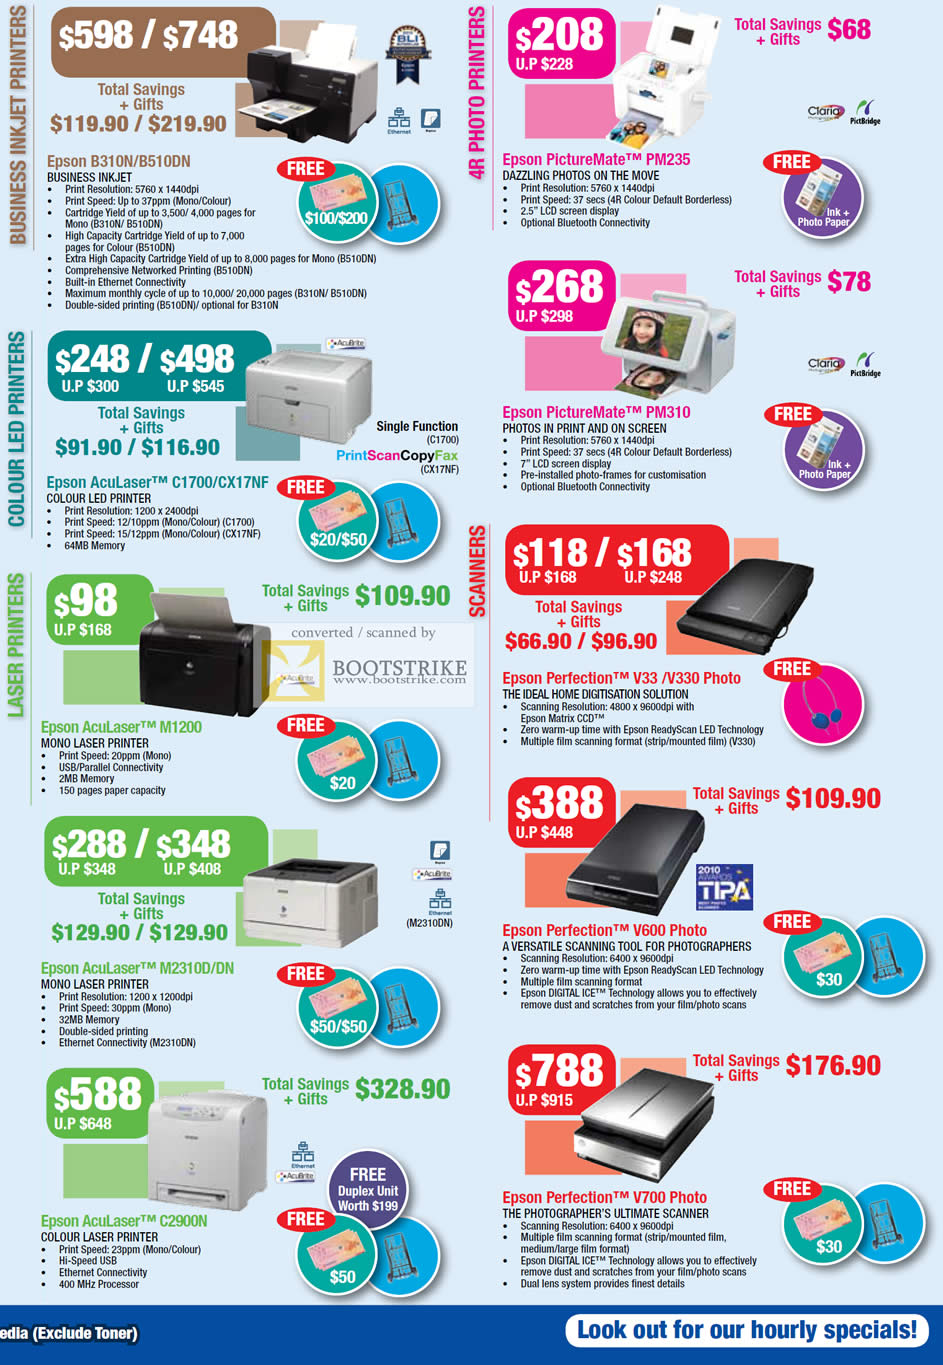 COMEX 2011 price list image brochure of Epson Printers Business Inkjet B310N B510DN PictureMate PM235 PM310 Colour LED AcuLaser C1700 CX17NF M2310D DN Scanner Perfection V600 C2900N V700